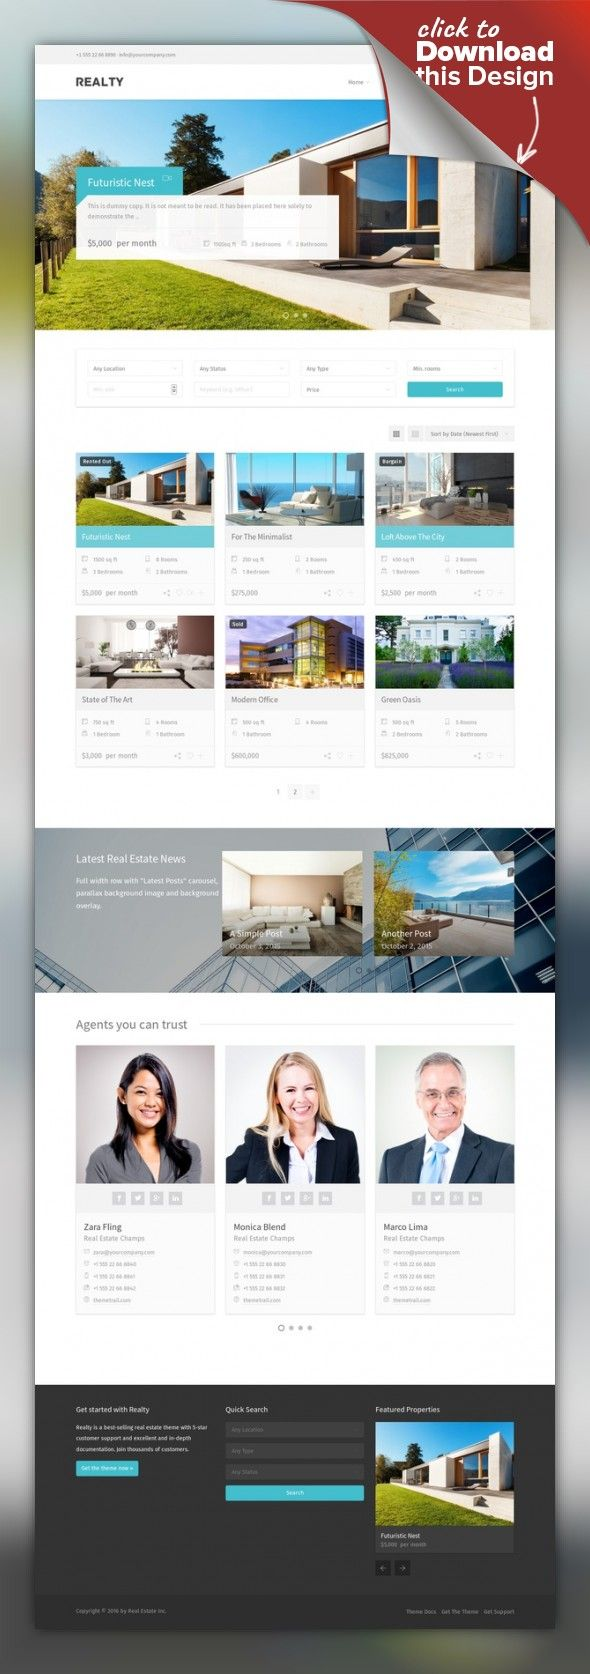 Realty - Real Estate WordPress Theme acf, agent, apartment, business, google maps, idx, listing, MLS, office, page builder, property, real estate, realtor, visual composer, wpml Realty is a fully-fledged property management system for real estate agents and companies. Accept free or paid submissions, offer membership packages – all from the frontend of your site. All theme components are available in Visual Composer, to help you build unique ...